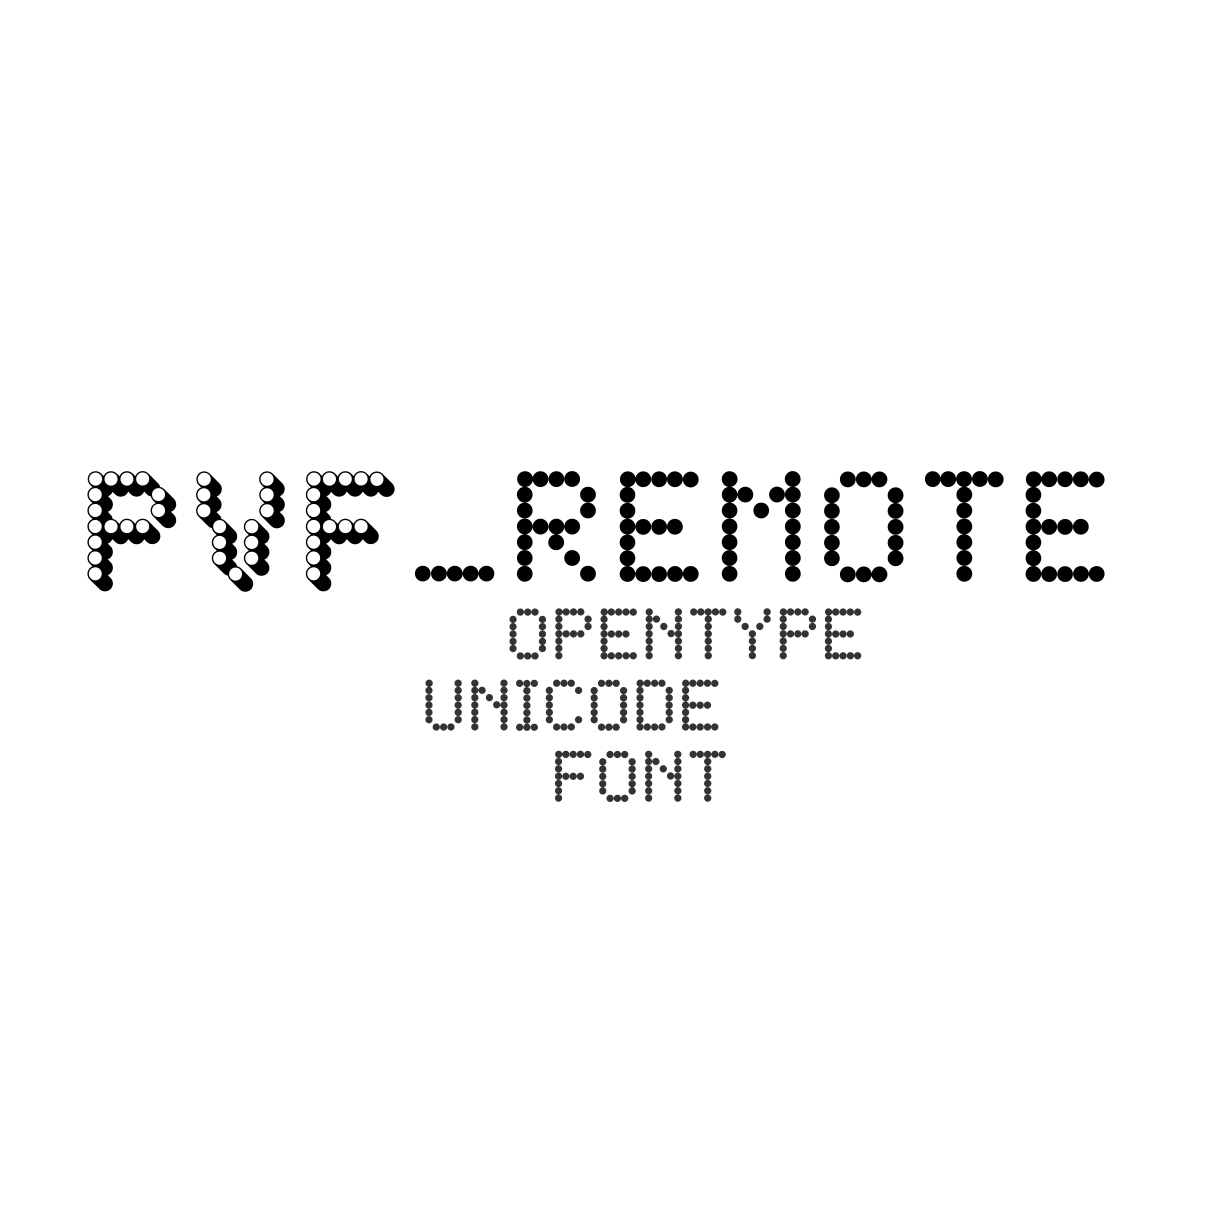 PVF_Remote #Free Display Dotted #OTF #Typeface